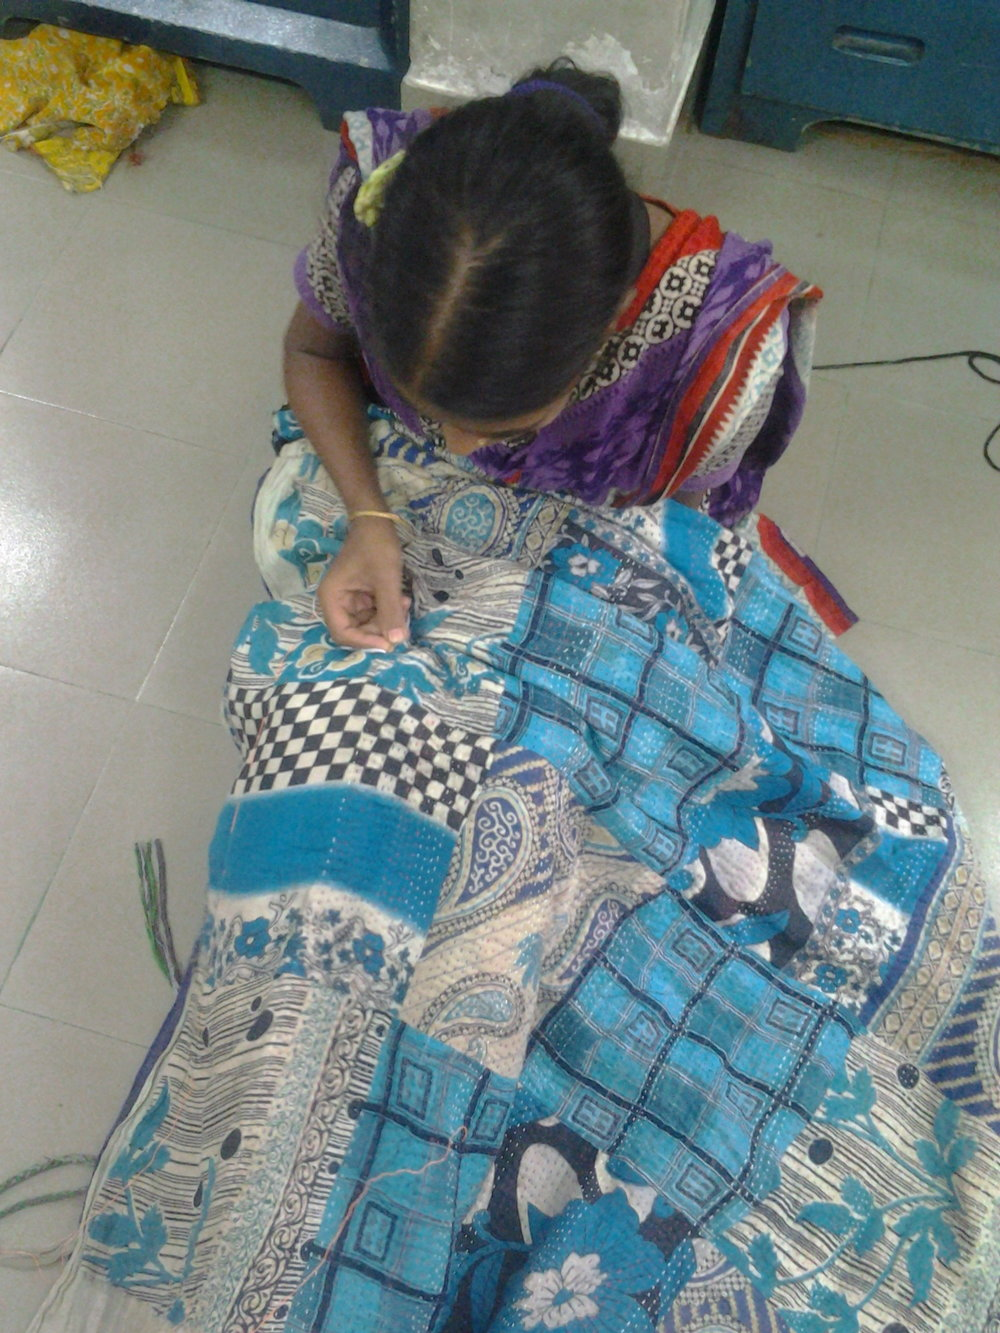 A young woman works on a quilt as part of the vocational skills program in Dhaka - Photo by Edna.